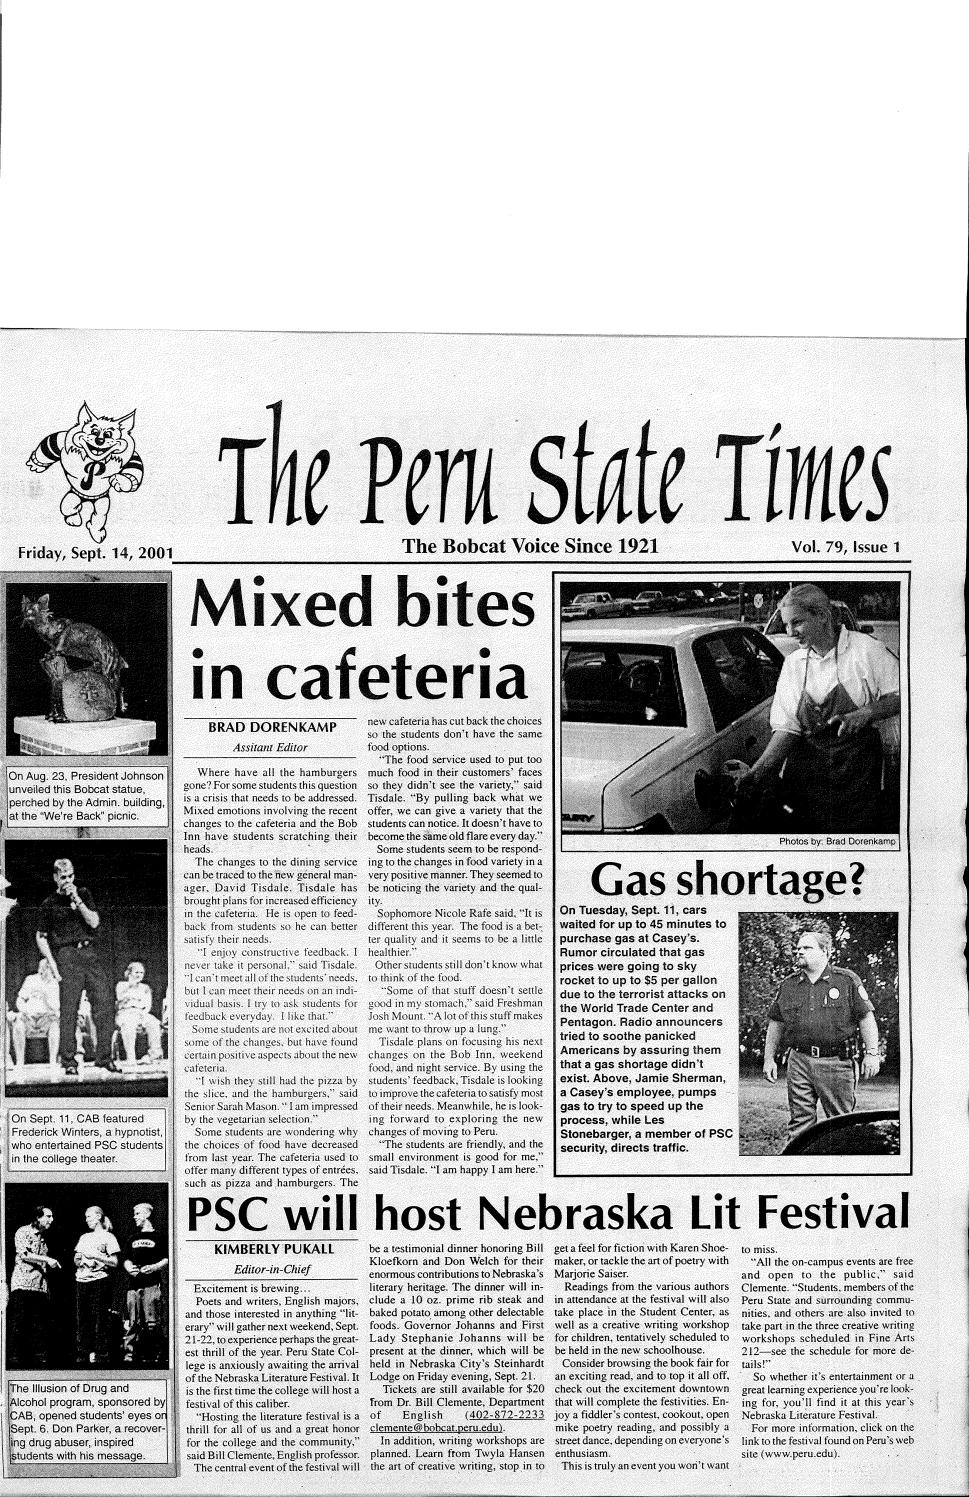 2001-2002 The Times (Peru, NE) - issues 1-12 by Peru State